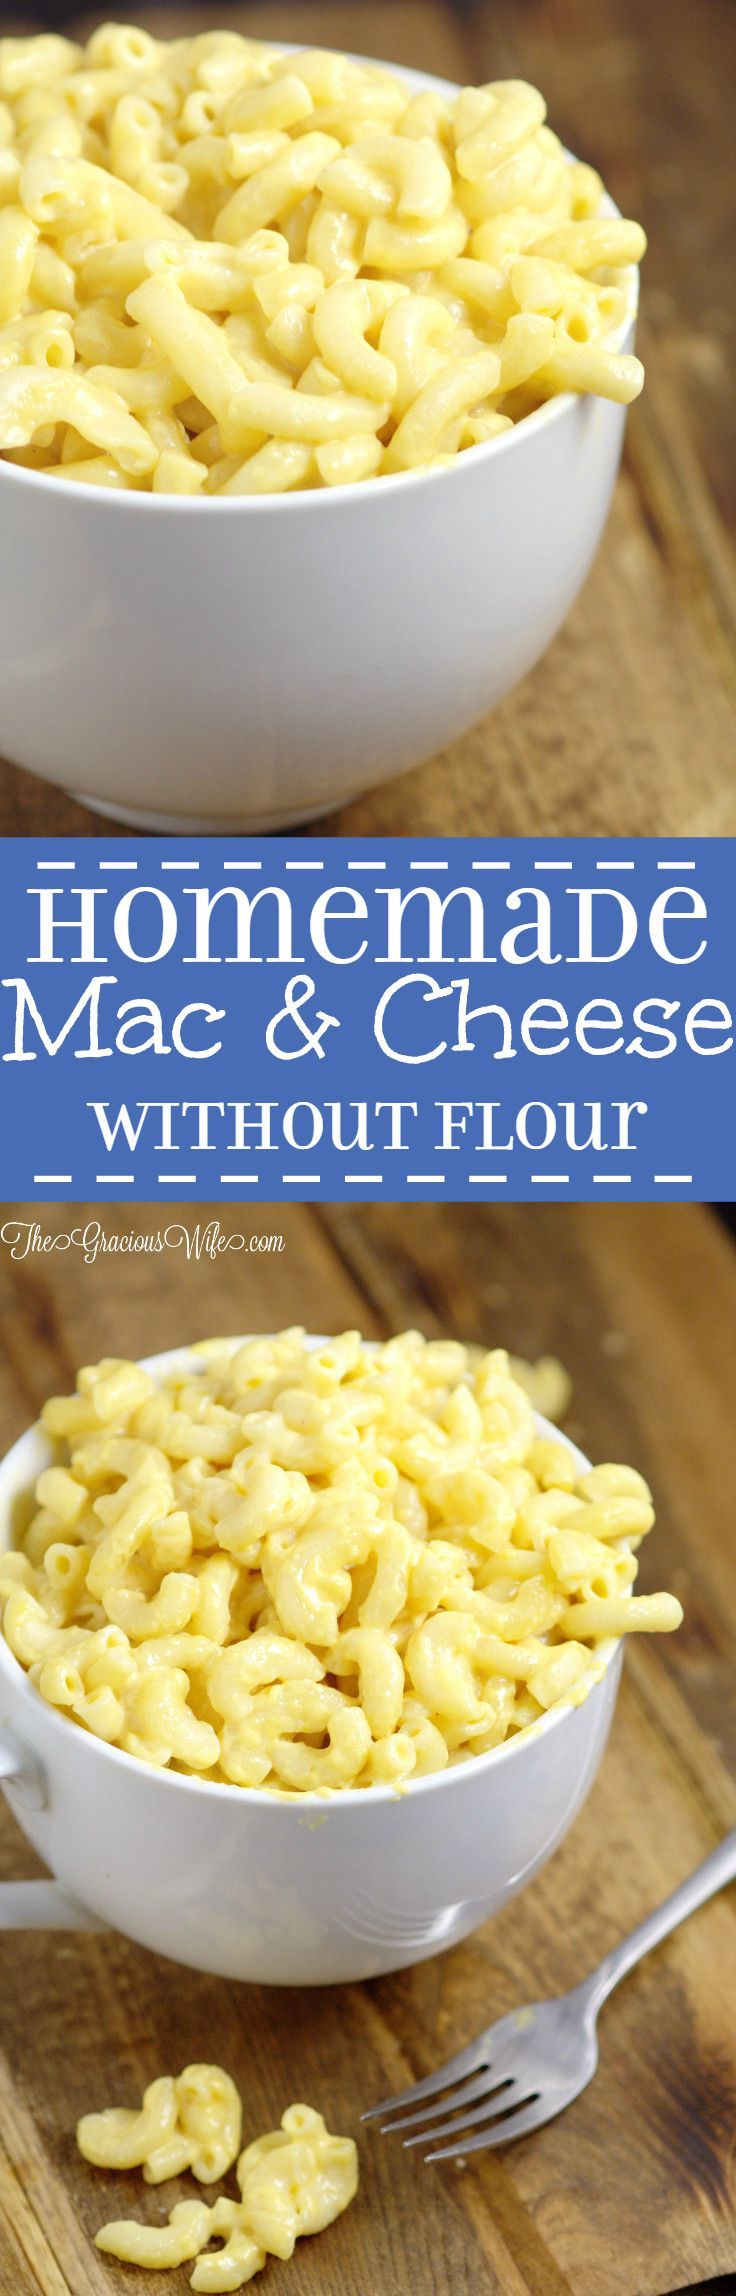 simple mac and cheese recipe without flour